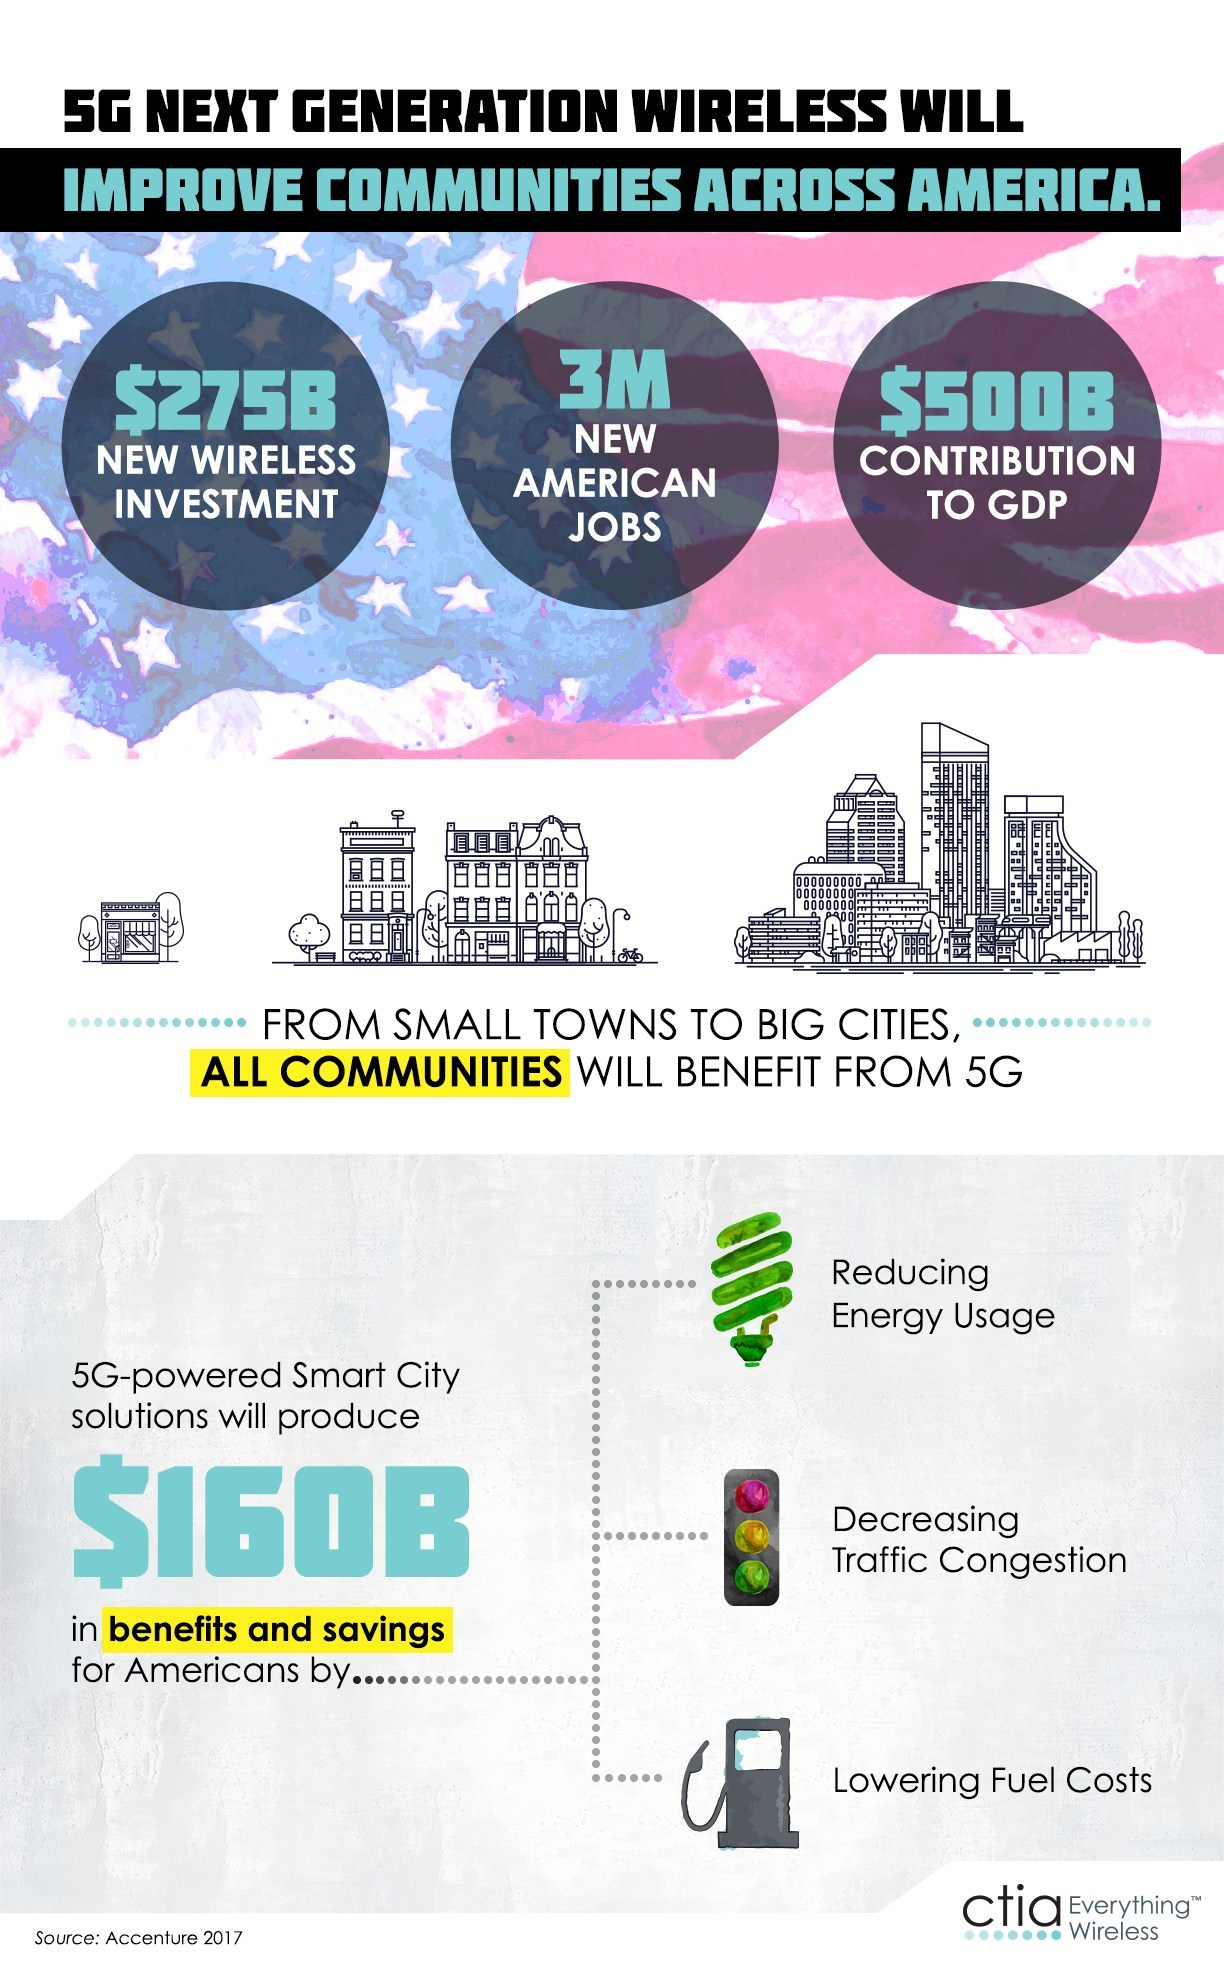 According to a new report from Accenture, deploying the next generation of high-speed 5G wireless networks could create up to three million jobs, add approximately $500 billion to the U.S. GDP and result in savings and benefits to local communities in excess of $160 billion. Wireless operators will invest as much as $275 billion nationwide over seven years as they build out 5G.